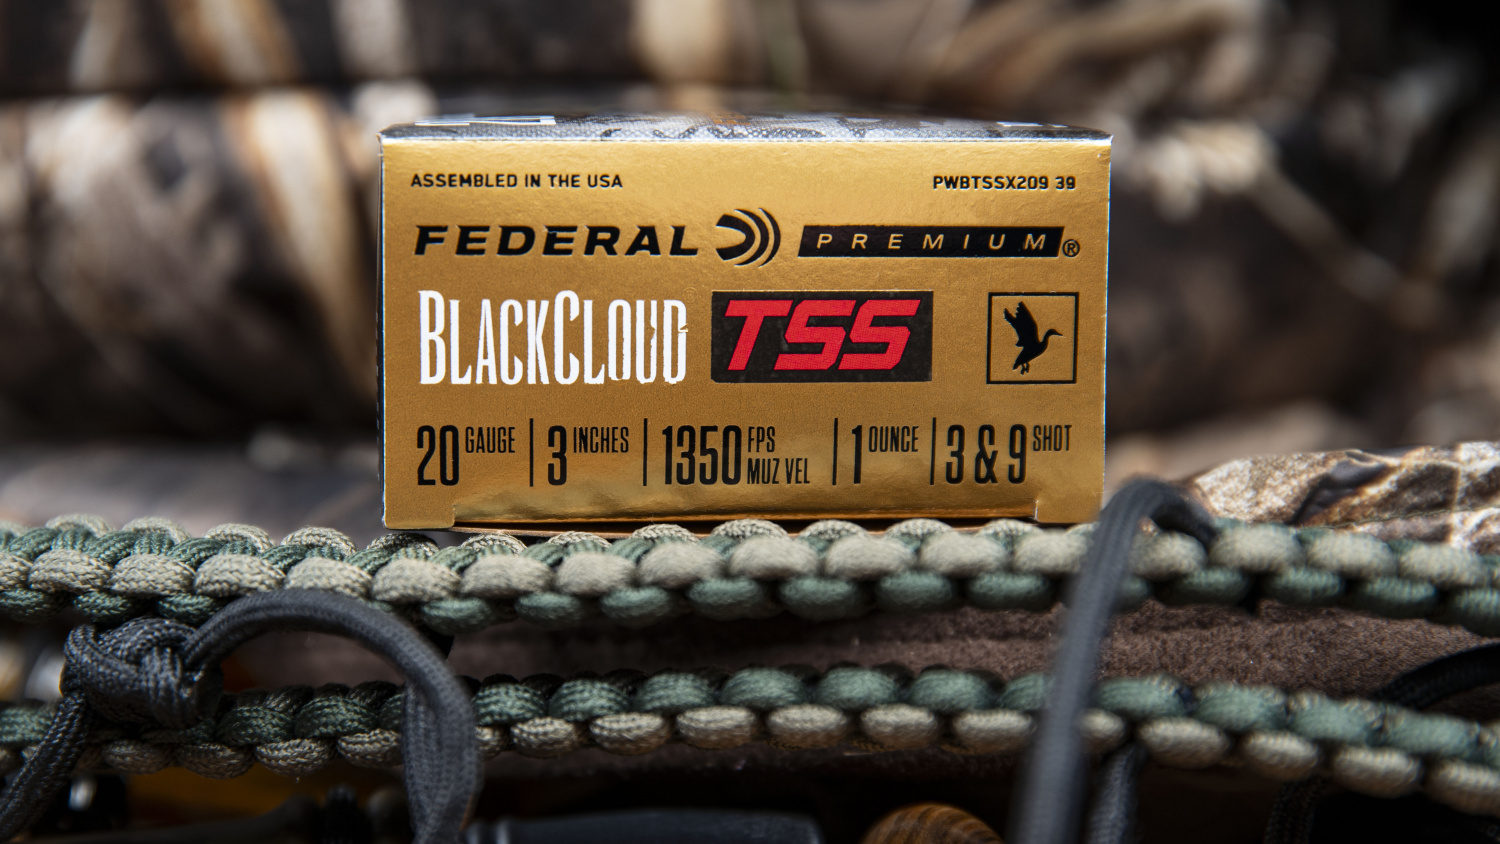 The Black Cloud TSS 20 Gauge's packaging with some pertinent info.